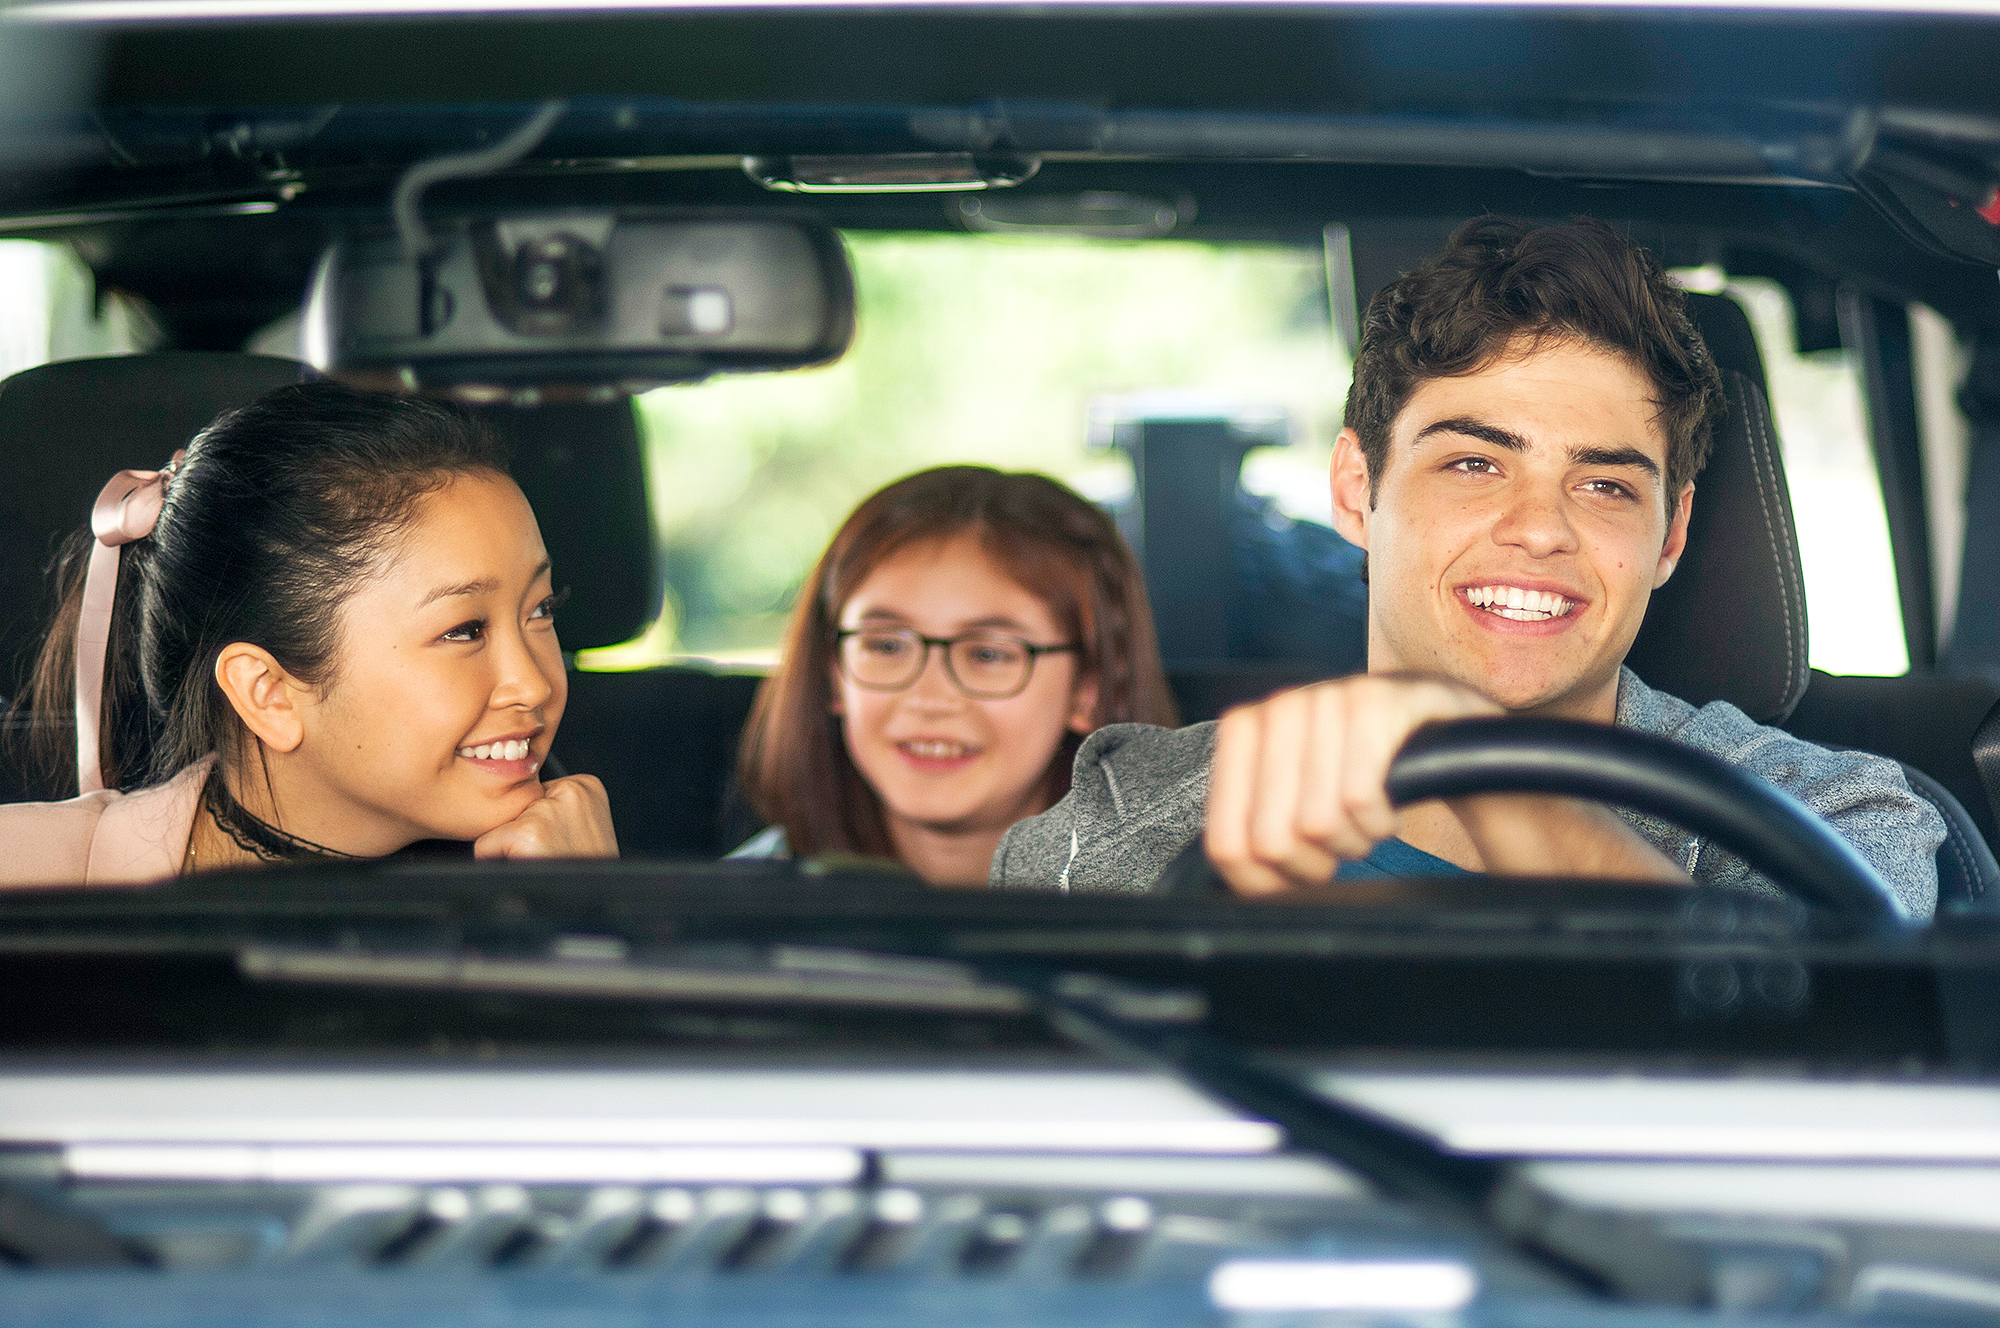 """To-All-the-Boys-I've-Loved-Before-sequel - To All the Boys I've Loved Before director Susan Johnson is continuing on with the franchise only as an executive producer, and in her absence, Michael Fimognari , the director of photography on the first film, stepped up as director of the sequel. """"Directing To All The Boys I've Loved Before has been one of the great experiences of my life, and I am grateful to the fans for their passionate support of the film,"""" Johnson said in a statement to The Hollywood Reporter ."""